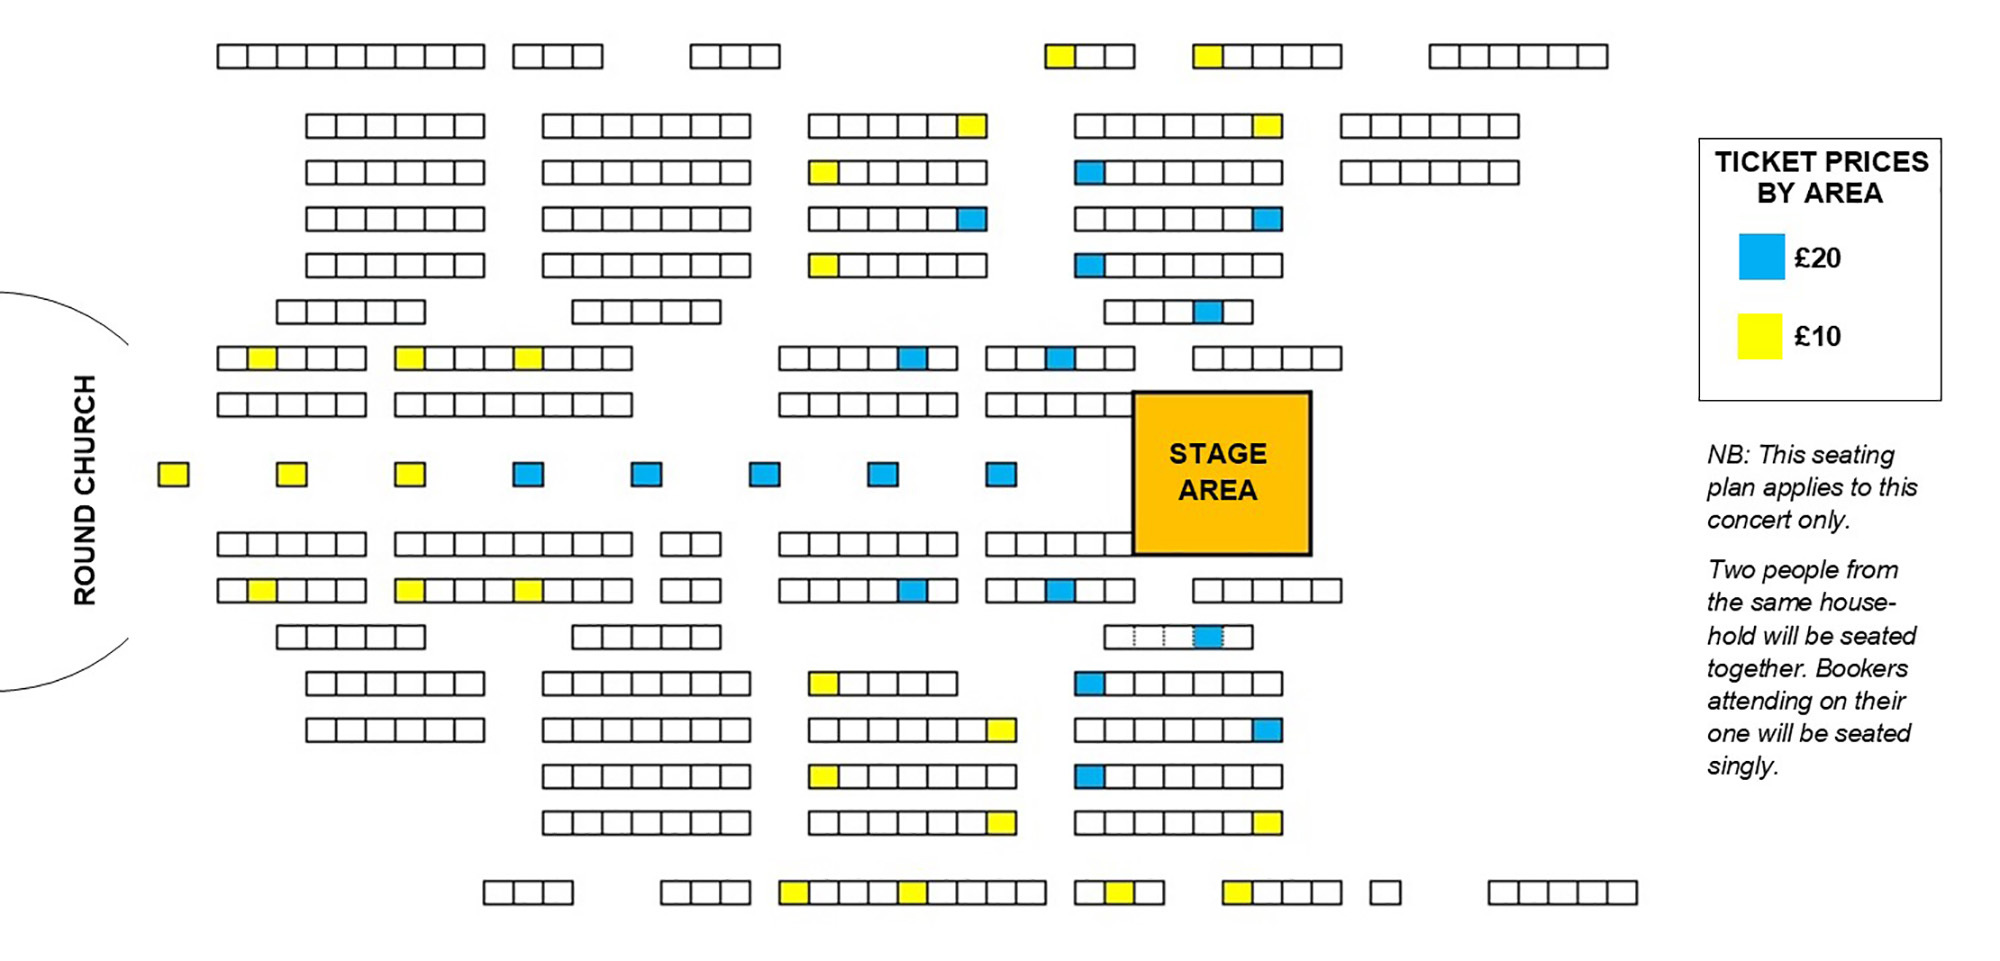 Seating plan A concert curated by John Ashton Thomas